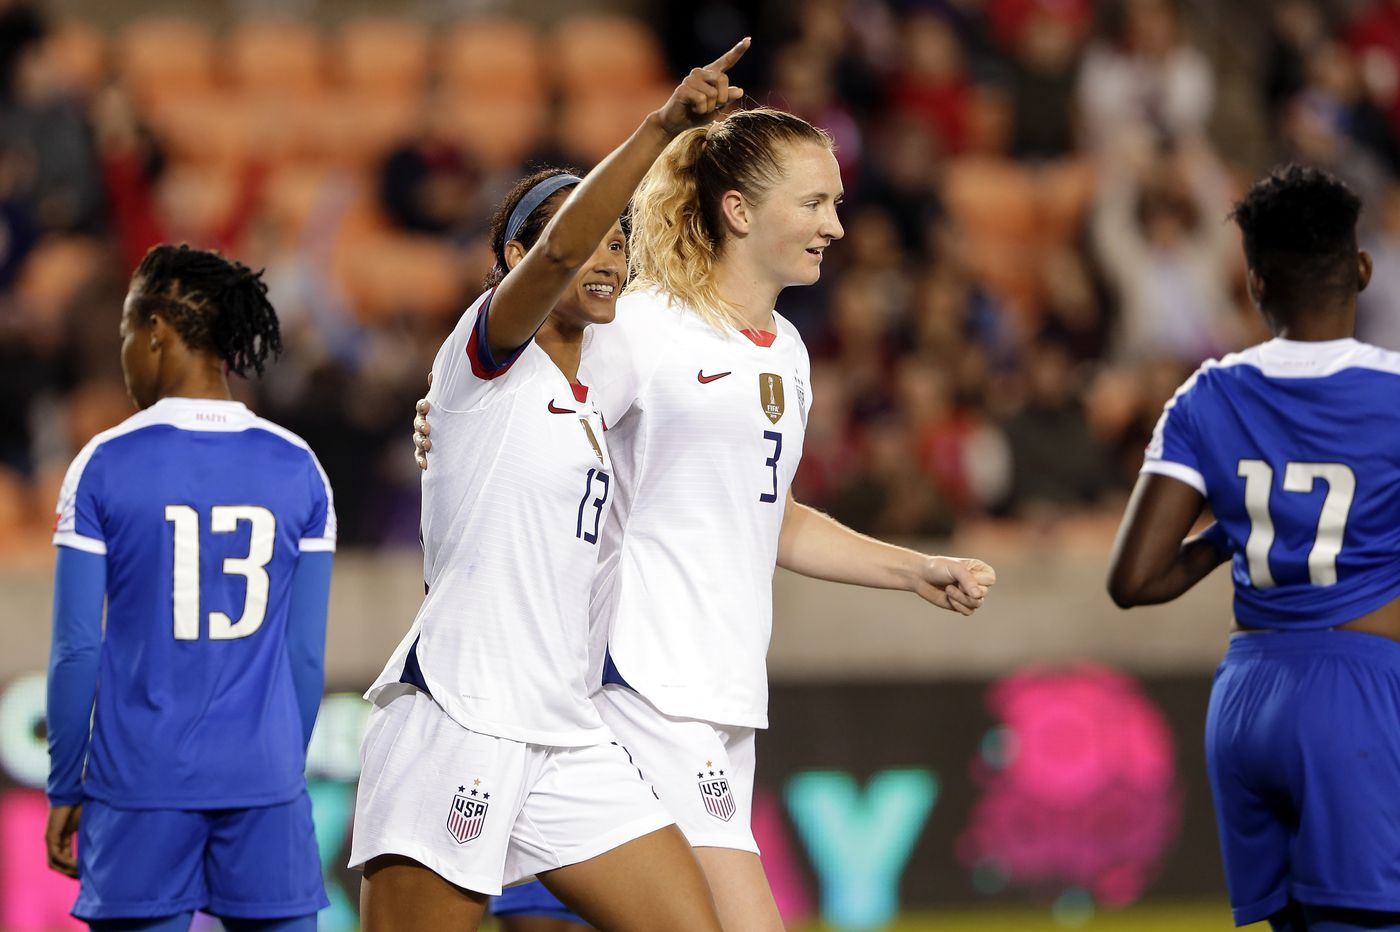 USWNT begins Olympic qualifying with rocky 4-0 win over Haiti